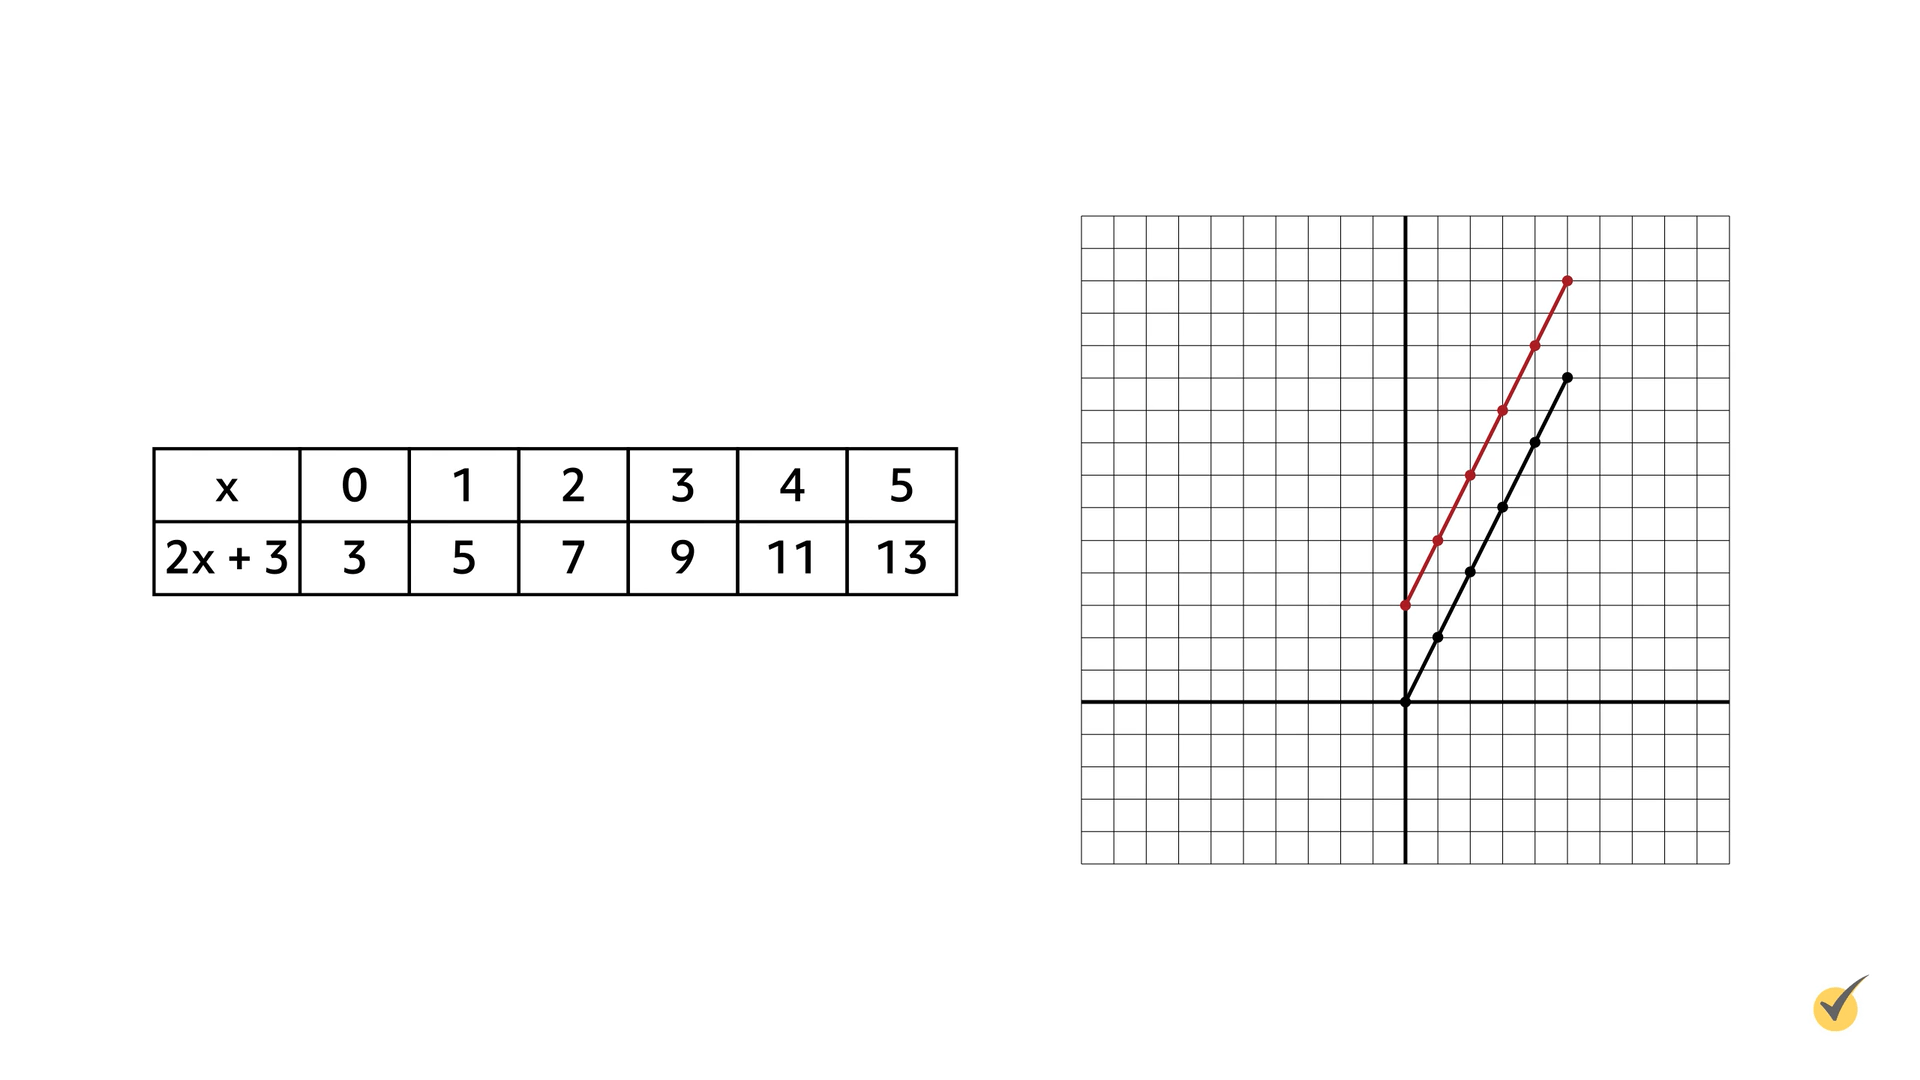 Image of table x over 2x+3 plotted on a graph.